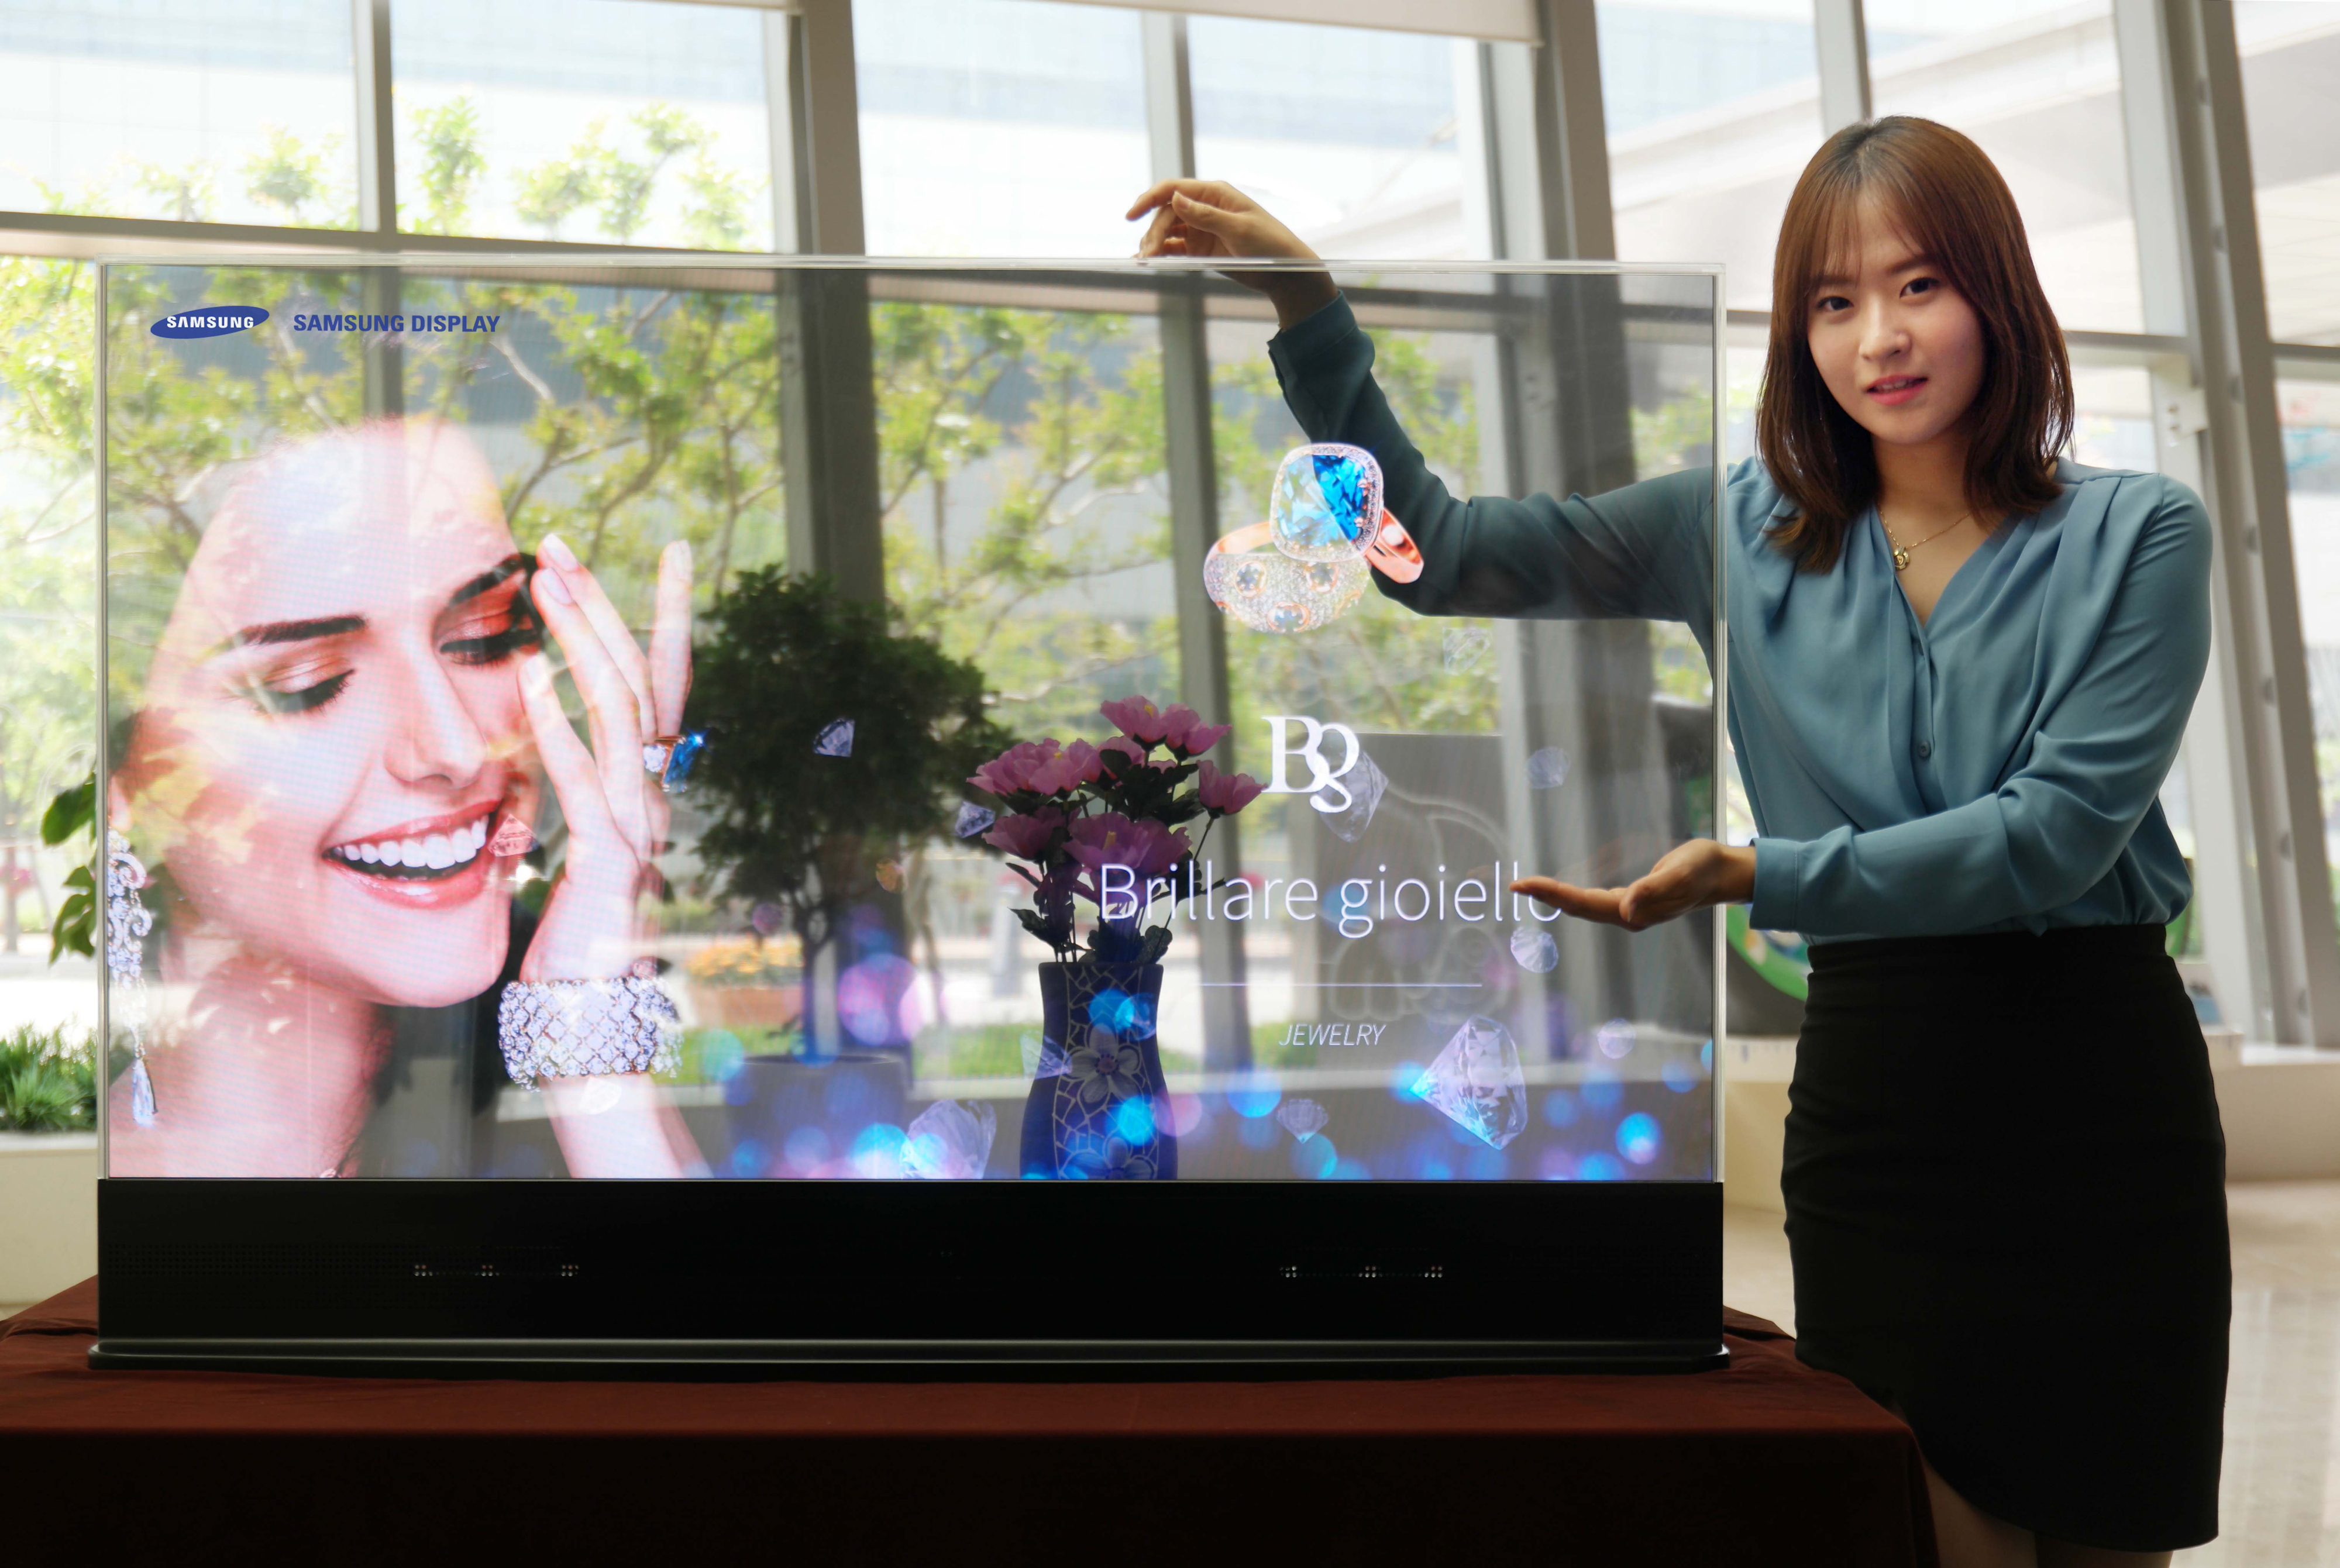 samsung introduces first mirror and transparent oled display panels